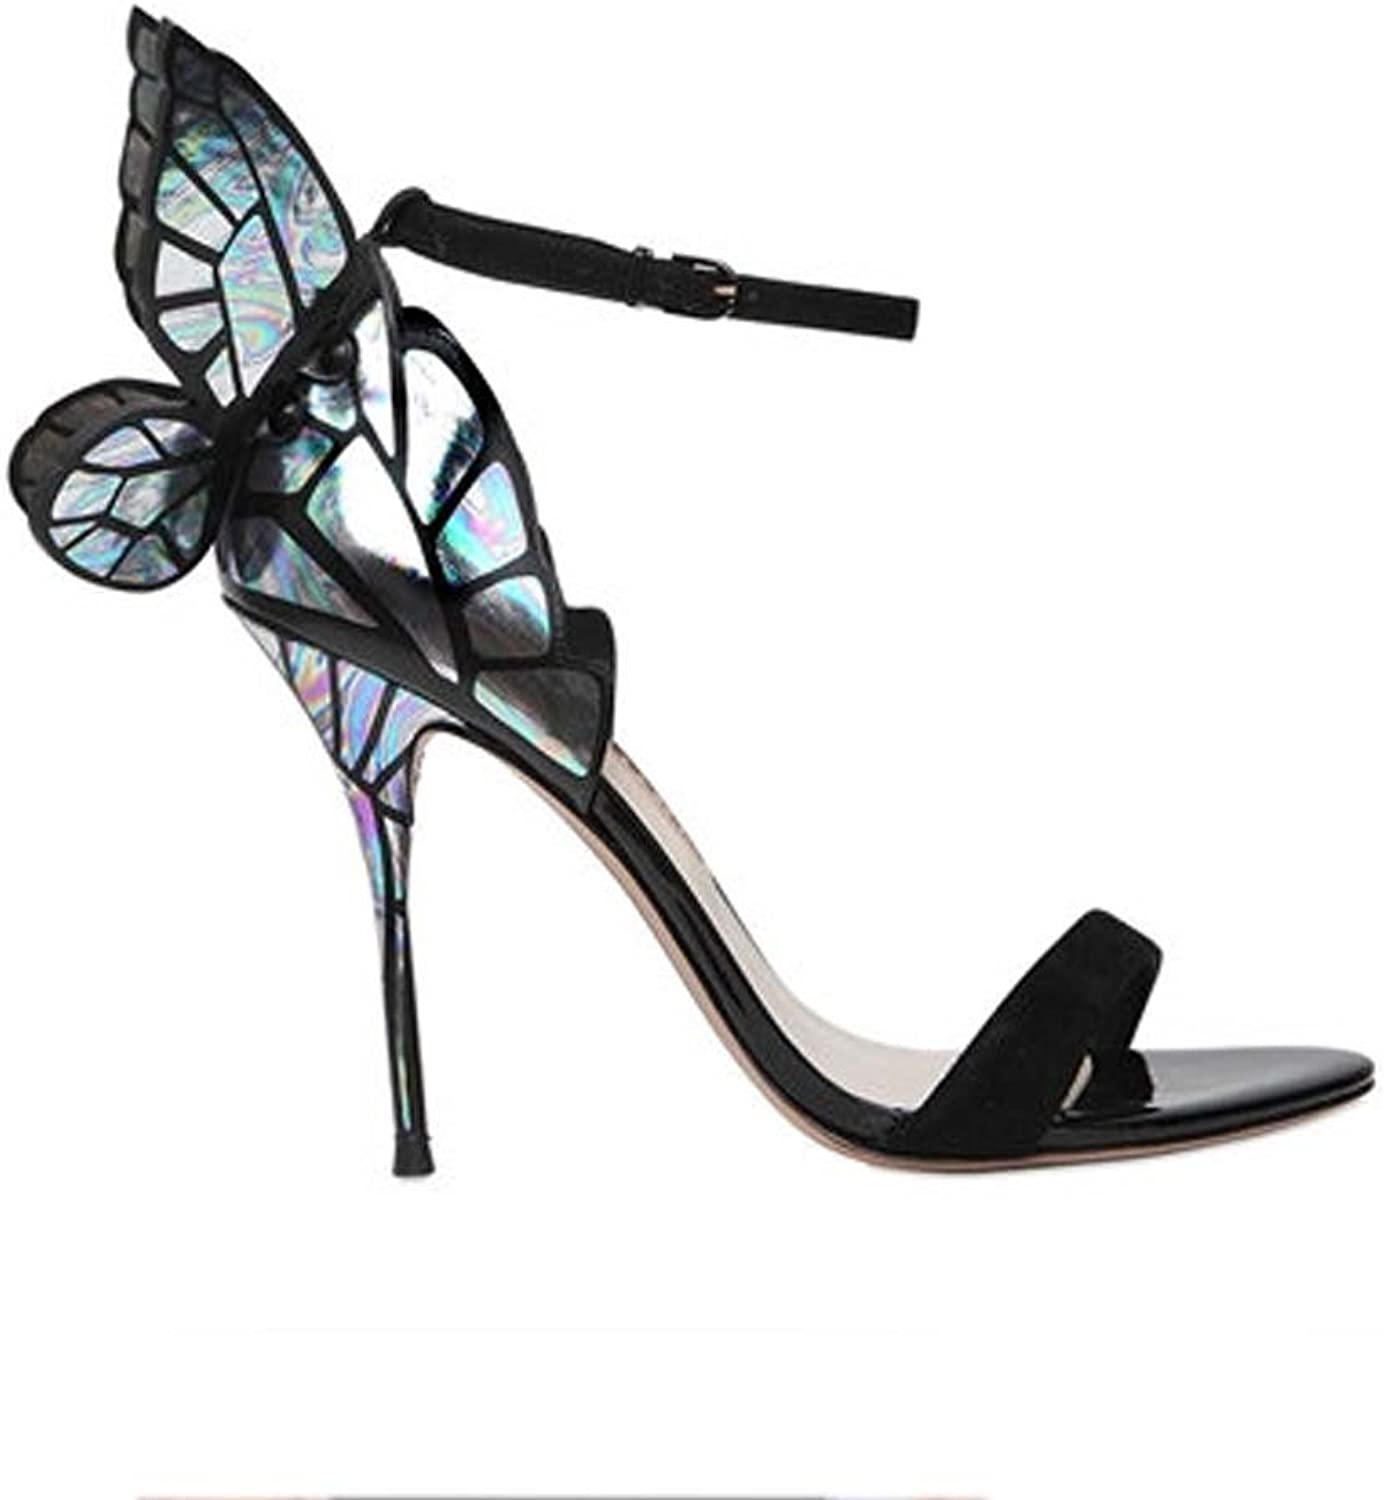 YANGXIAOYUgaogenxie The Summer color Butterfly Wing Black Suede with High Heels and Sandals.